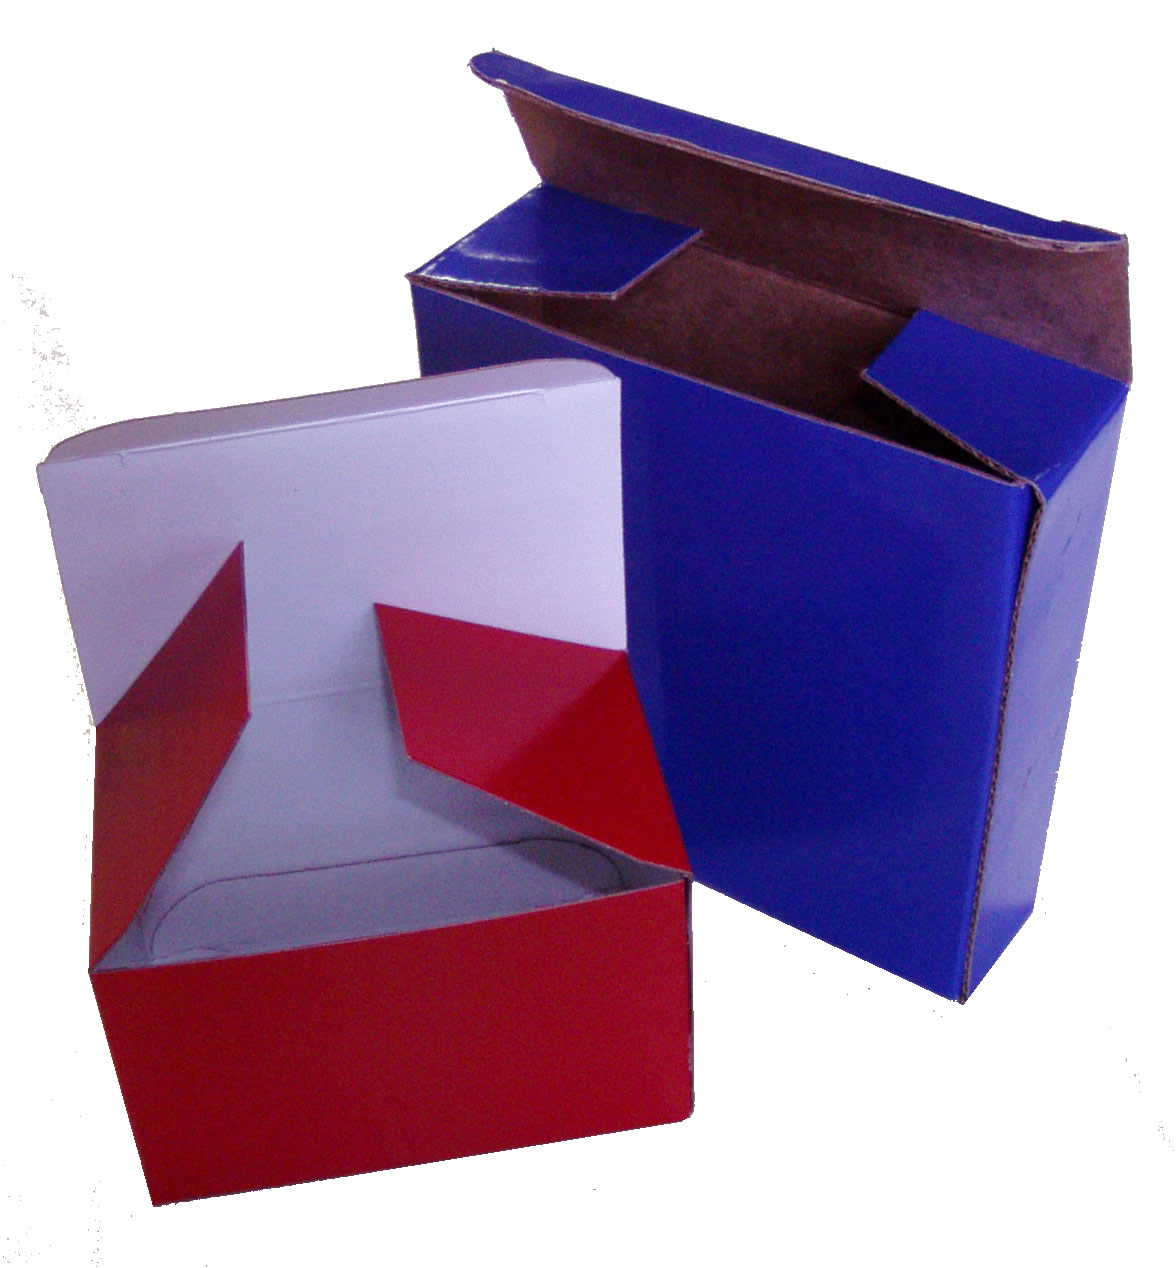 Monocartons - Primary Packaging